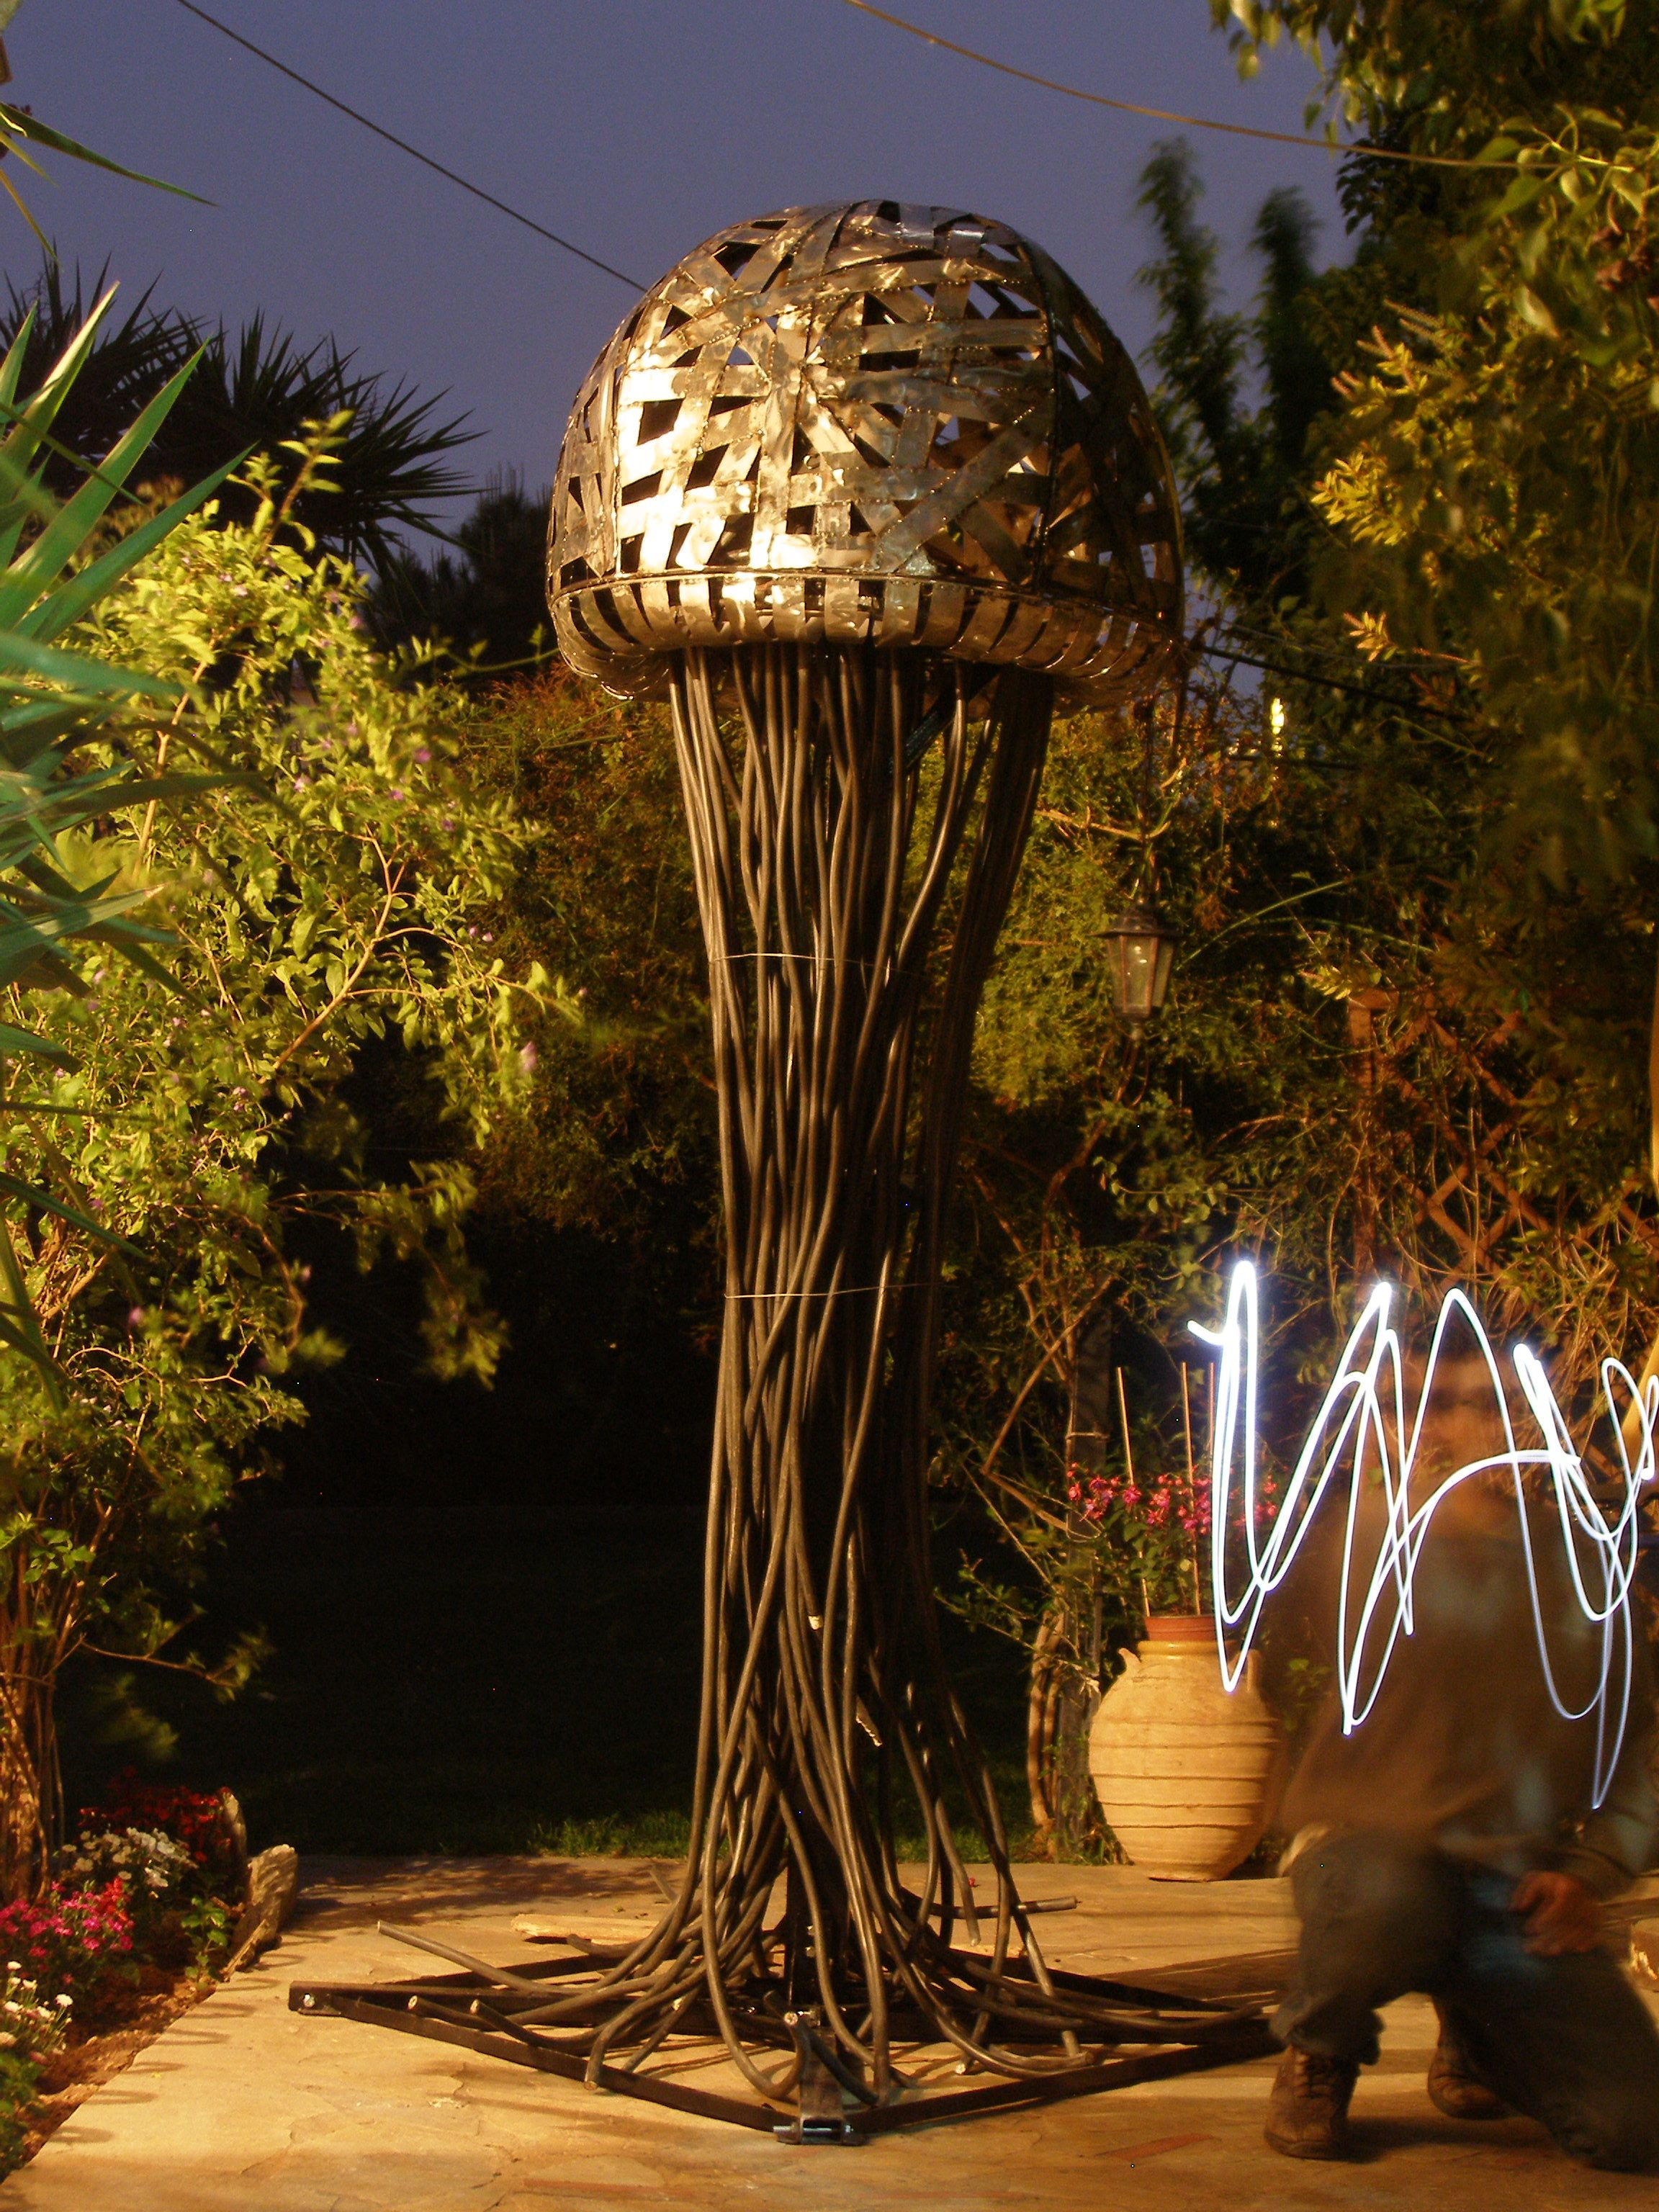 Garden Metal Sculpture Meduse Created By Greek Visual Artist